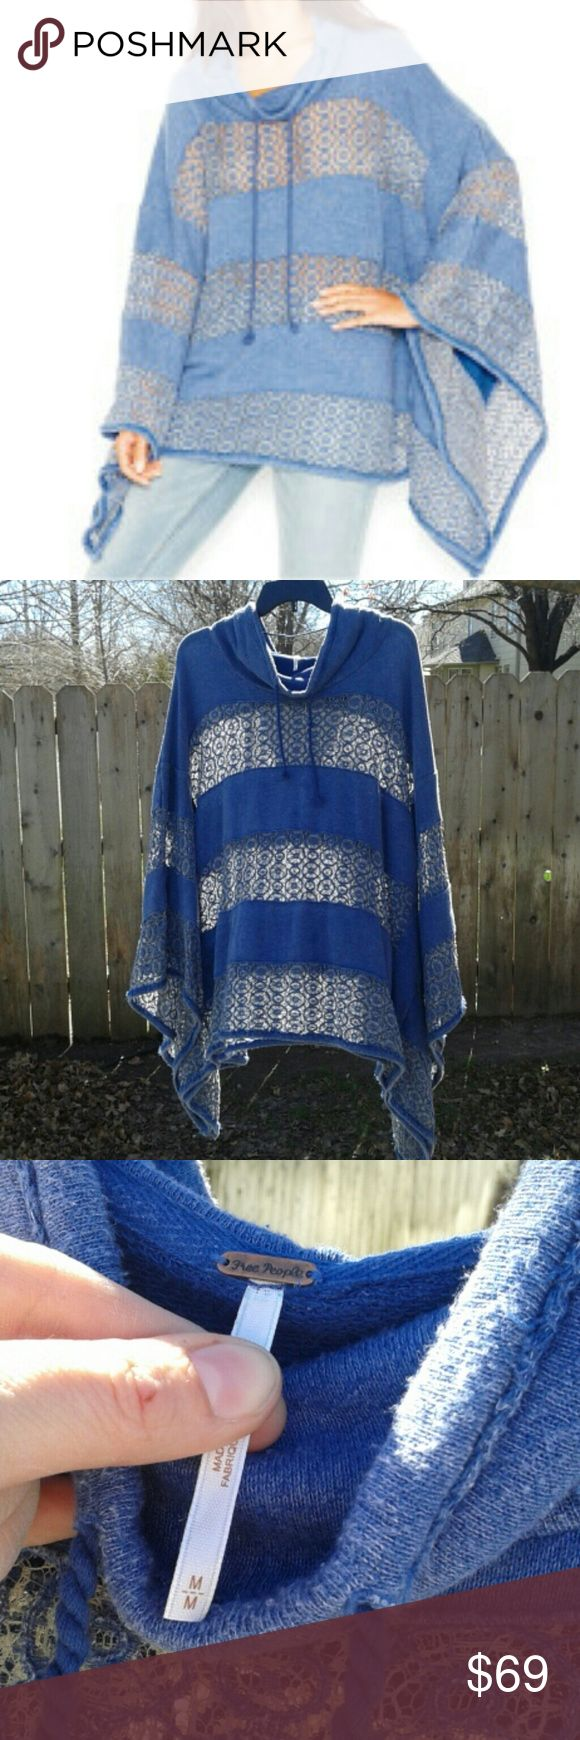 Free People peekaboo poncho Sz M, oversized in excellent used condition. I usually wear L or XL and can wear it. Light piling which is typical with this sweatshirt like material. I've only washed it in cold and air dried it. Blue color. The crochet sections are sheer. Free People Tops